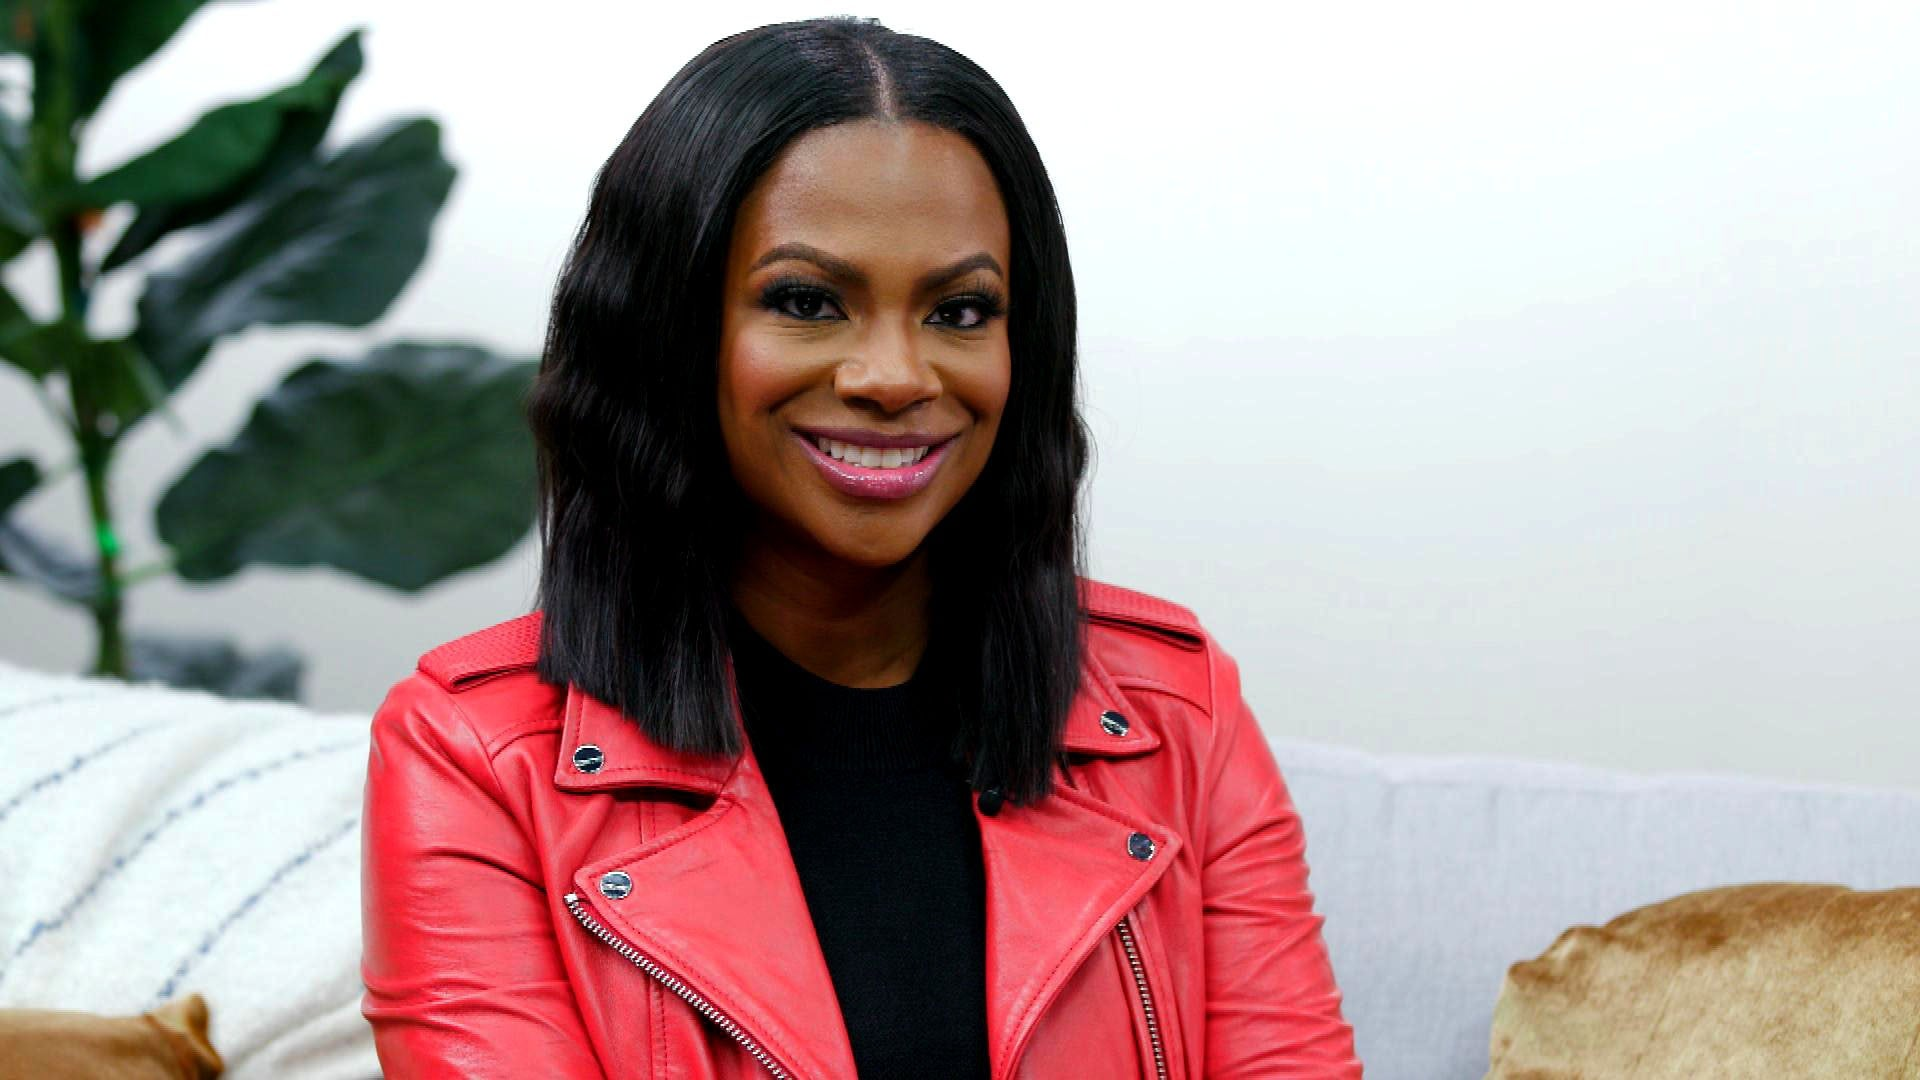 Kandi Burruss' Advice Has Fans In Awe - Check Out The Post She Recently Shared And The Dress She's Flaunting!